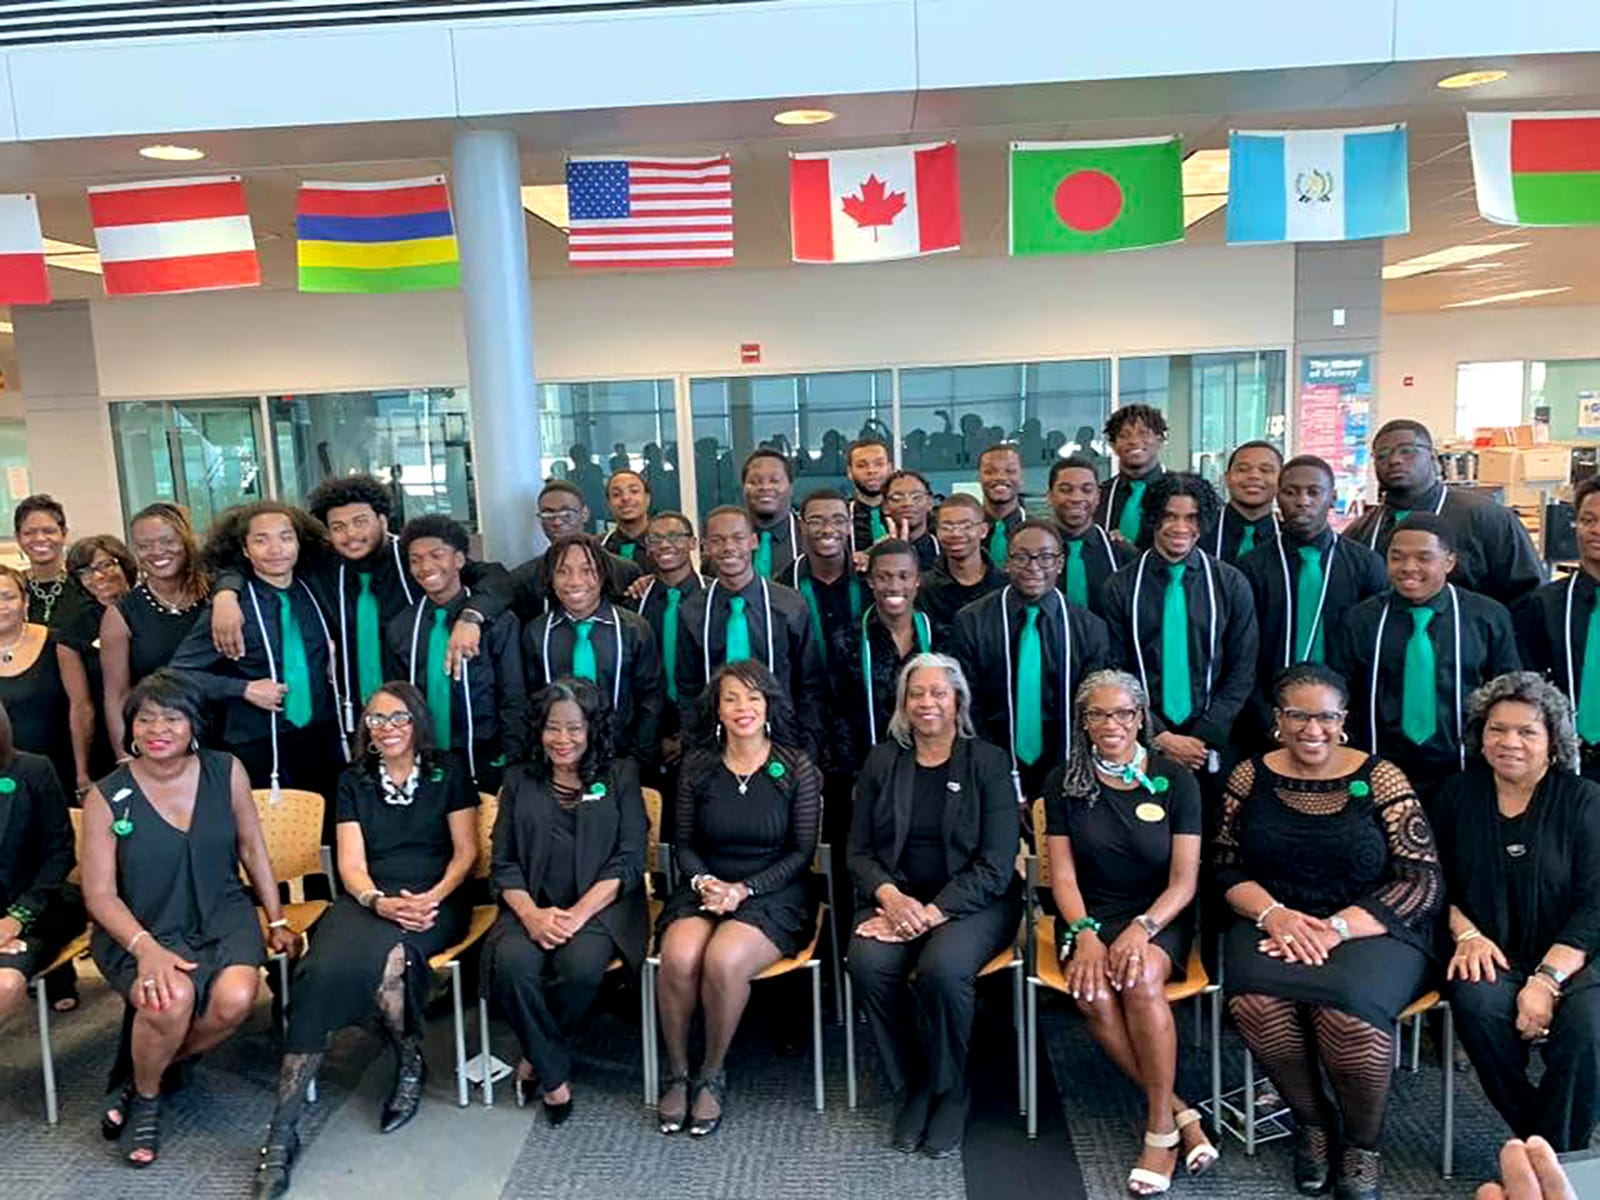 In Detroit, members of The Links, Incorporated have extended their volunteerism to touch the lives of young men, including a pre-pandemic mentoring program with Cass Tech students called CT GENTS.